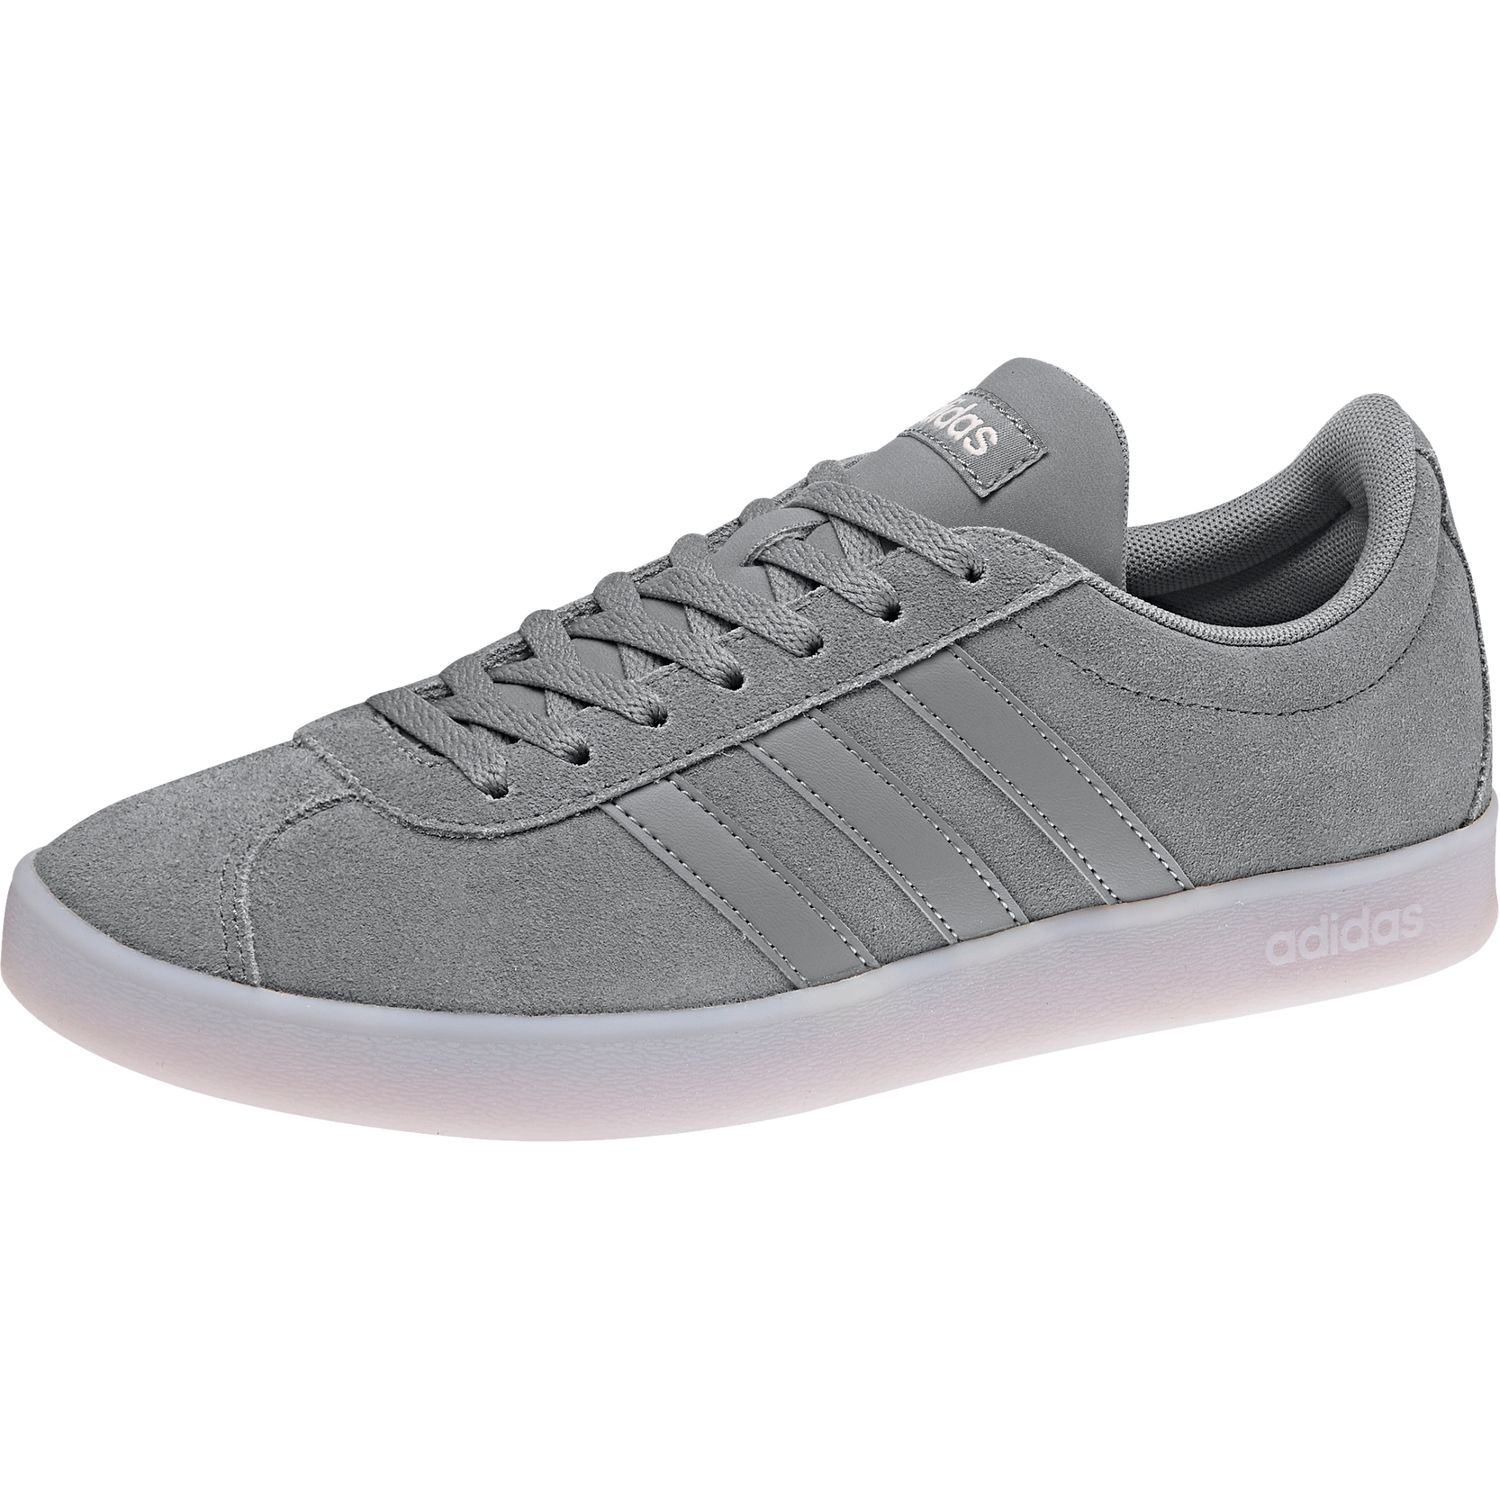 a951826ba4e361 Adidas Ladies VL Court 2.0 w Trainers Shoes db0839 Grey